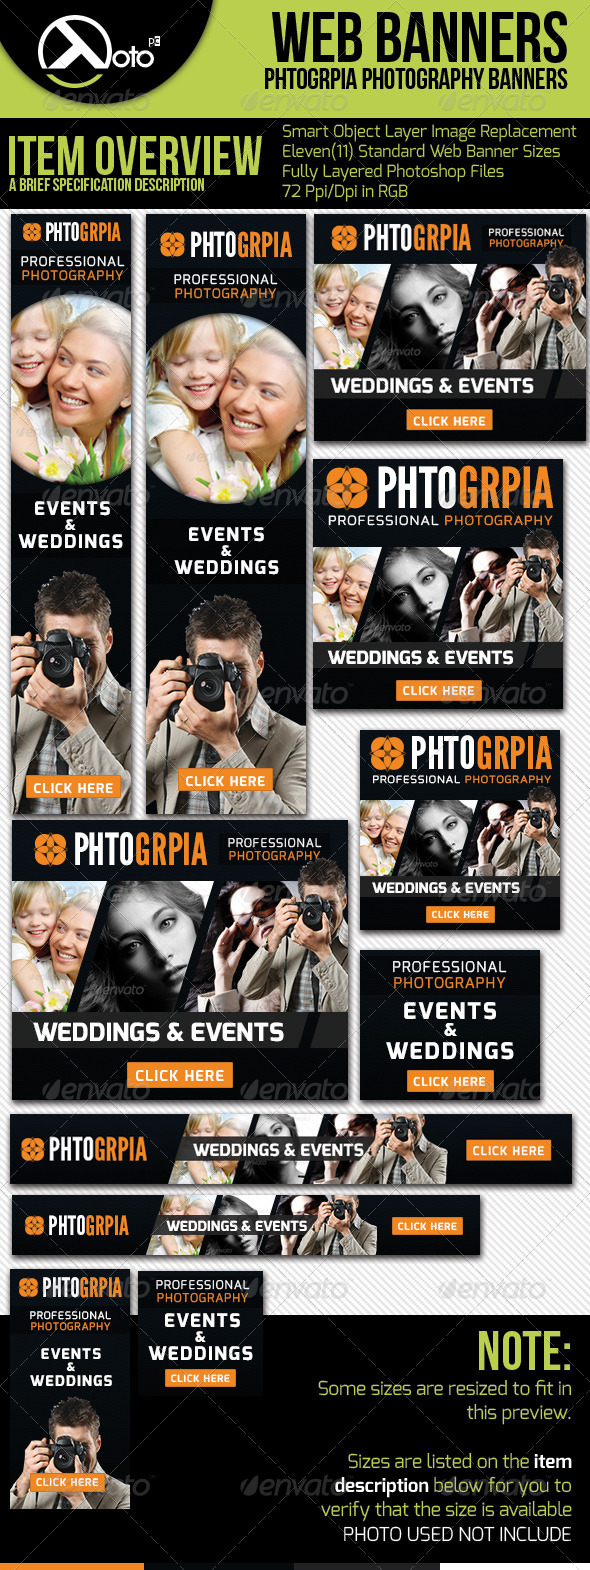 Photographia Professional Photography Web Banners - Banners & Ads Web Elements